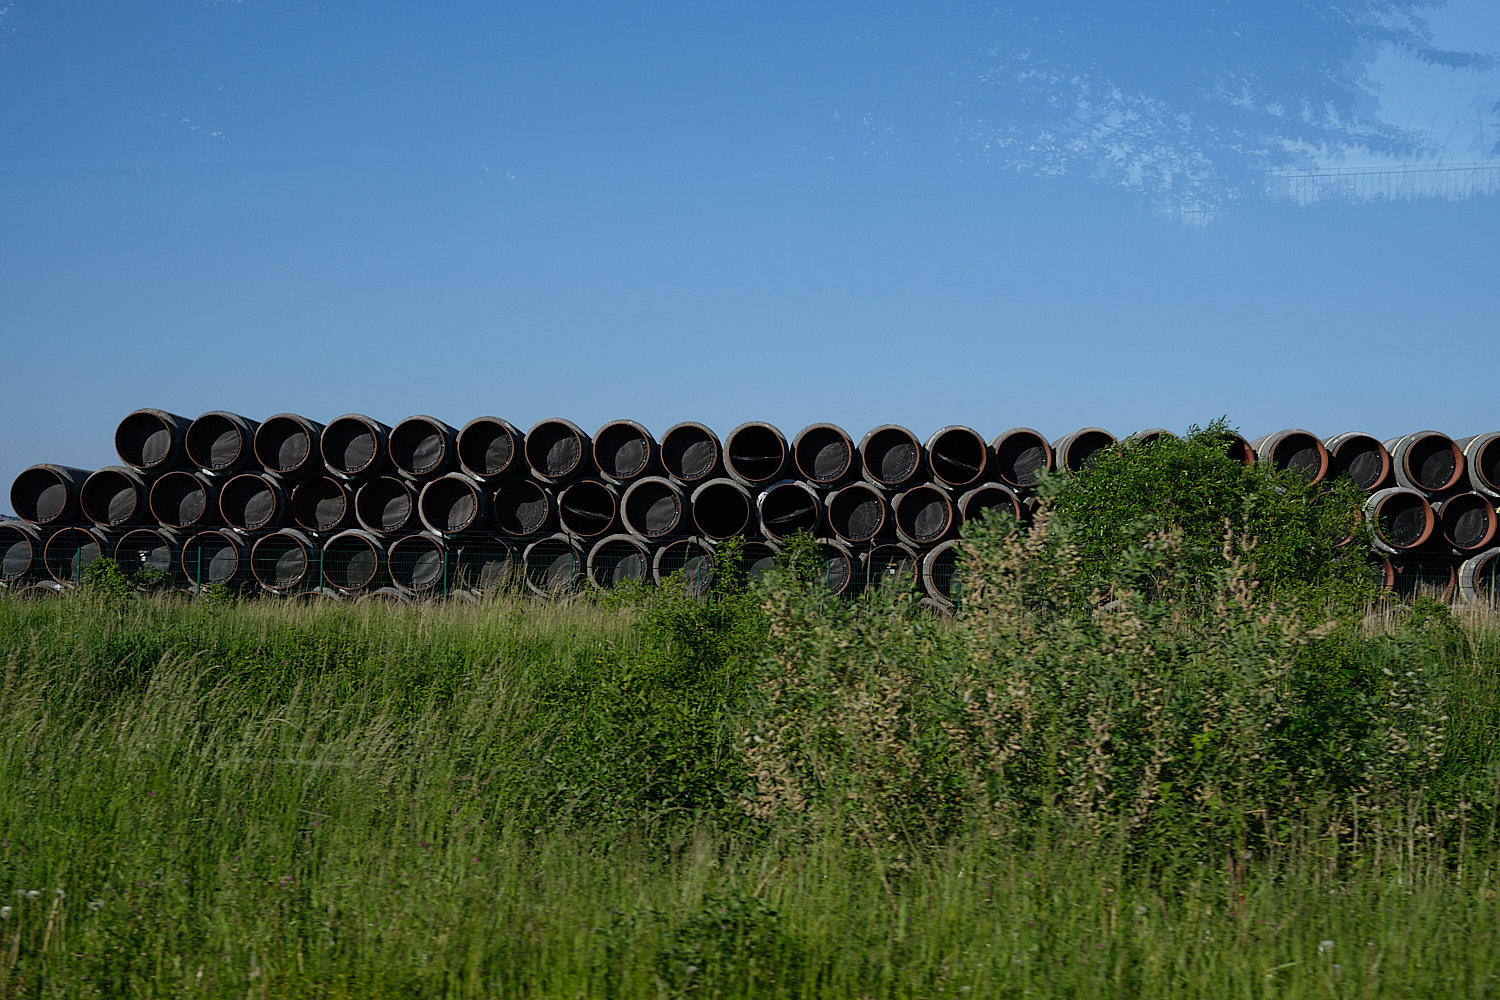 North Stream gas pipes in Rügen waiting to be shipped to the building site